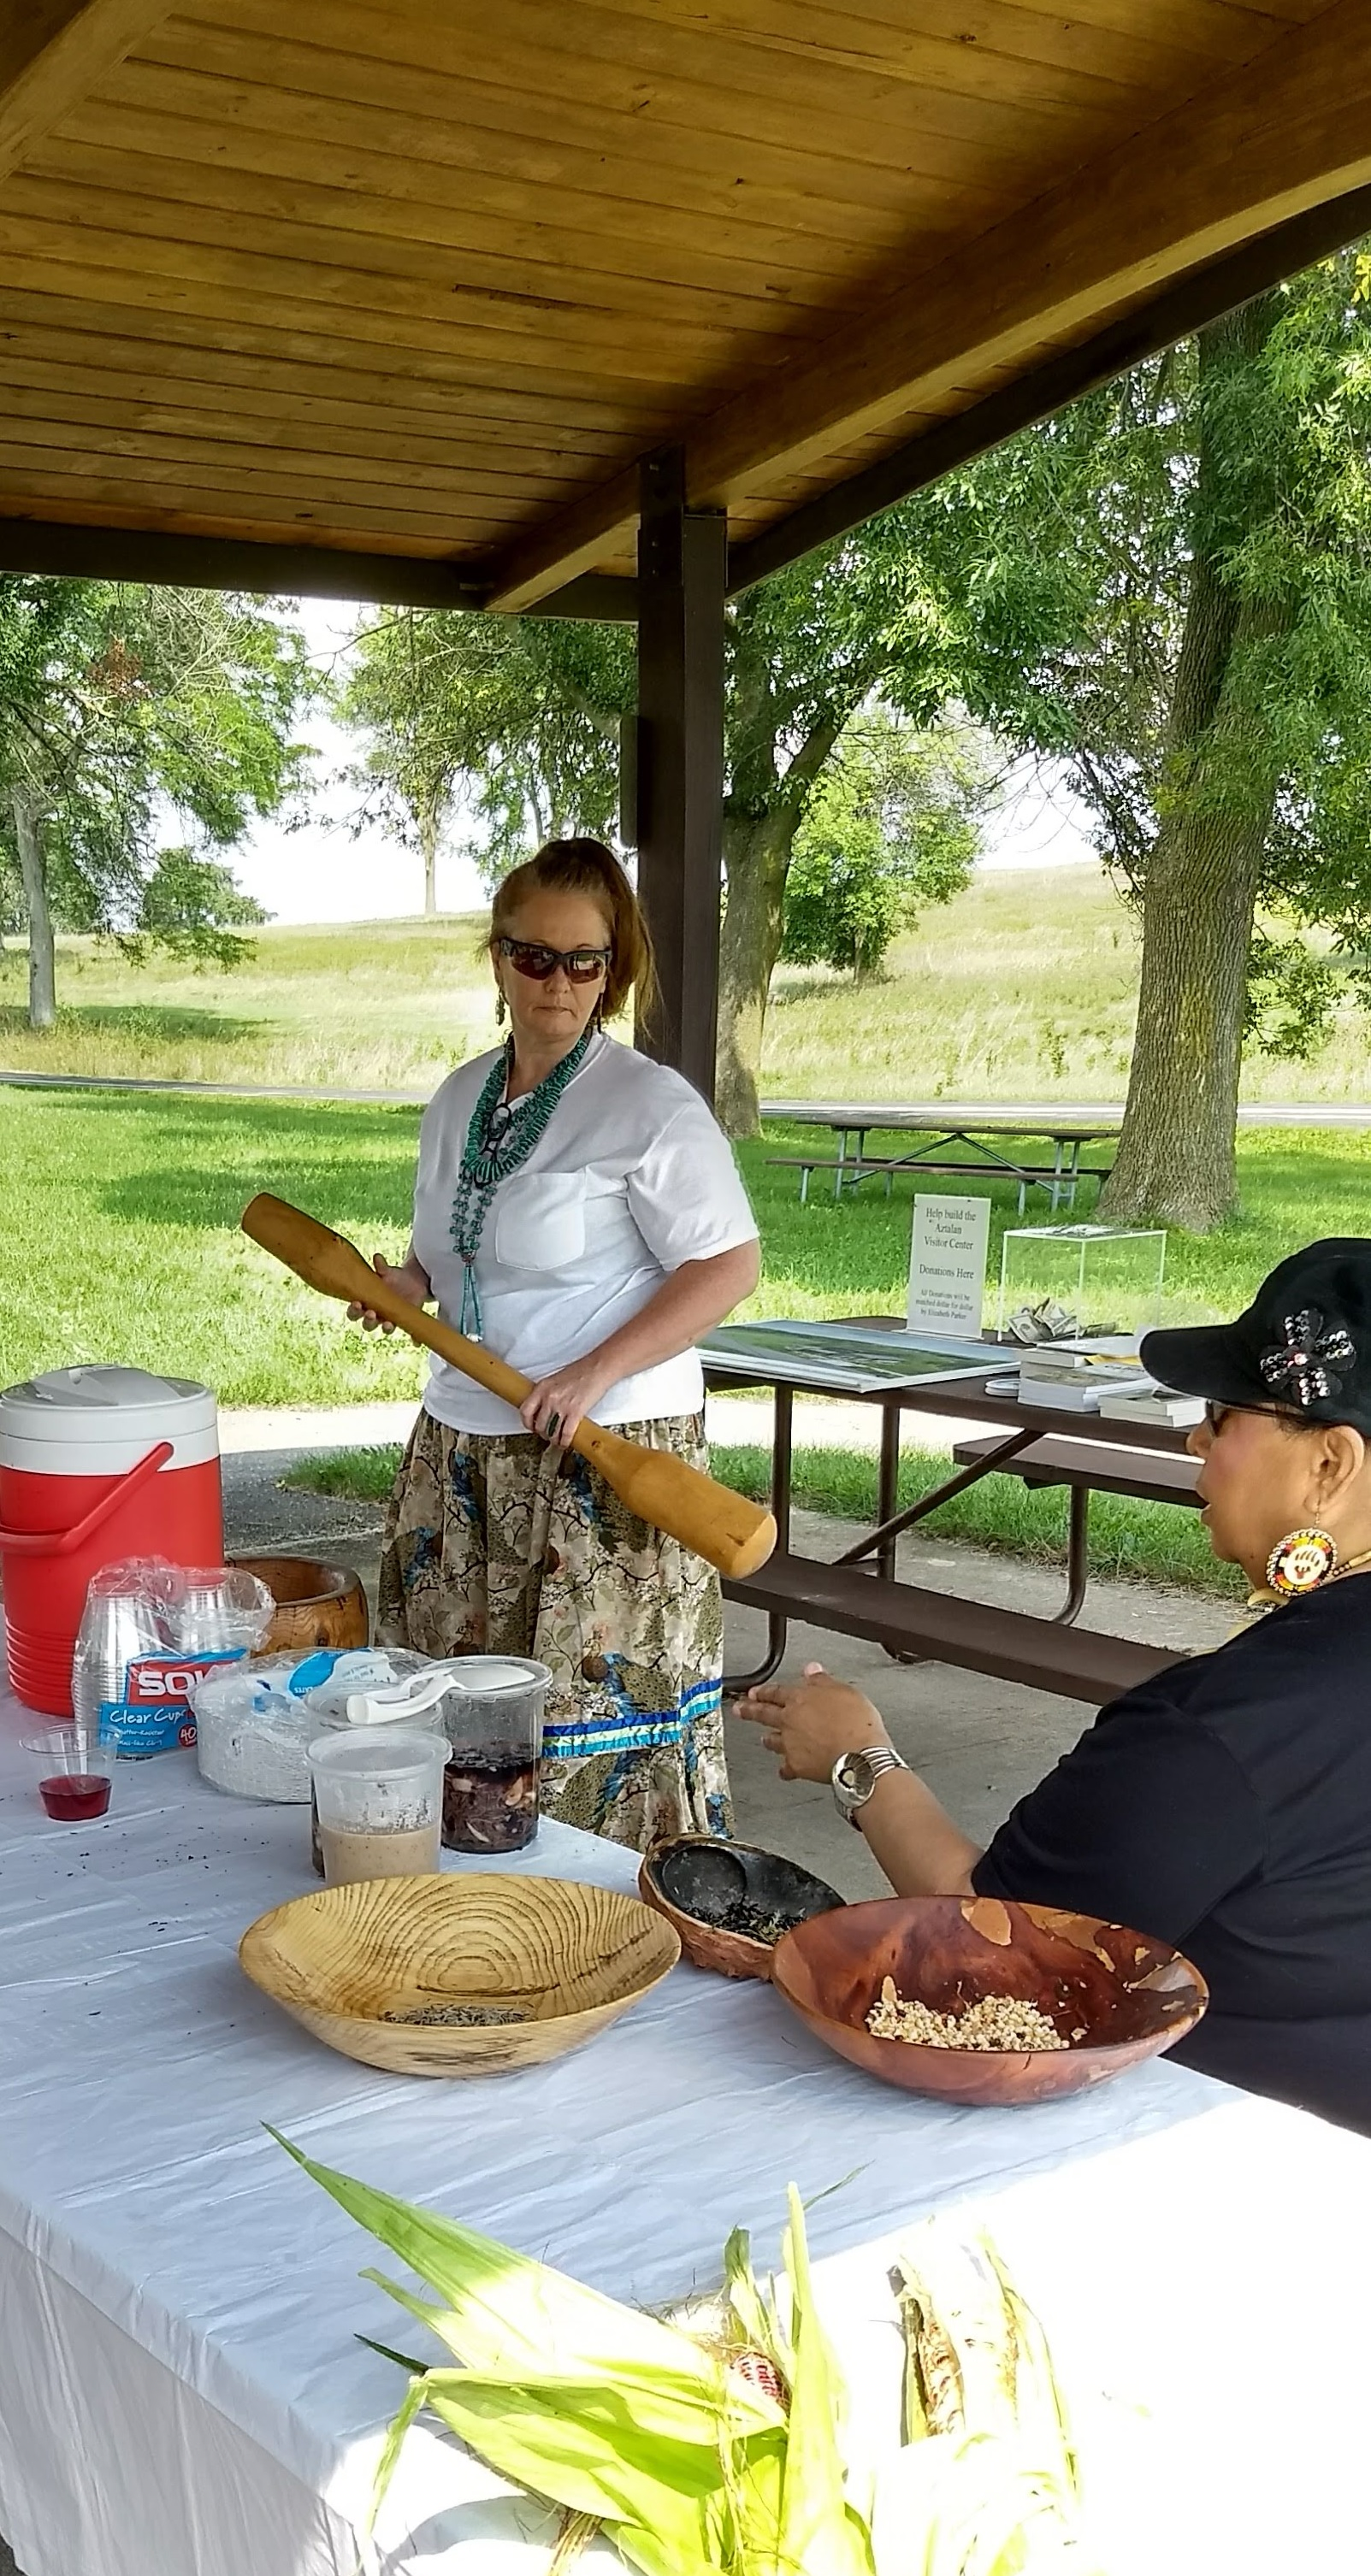 Rhonda Funmaker and Jodee Smith, with the corn pounder